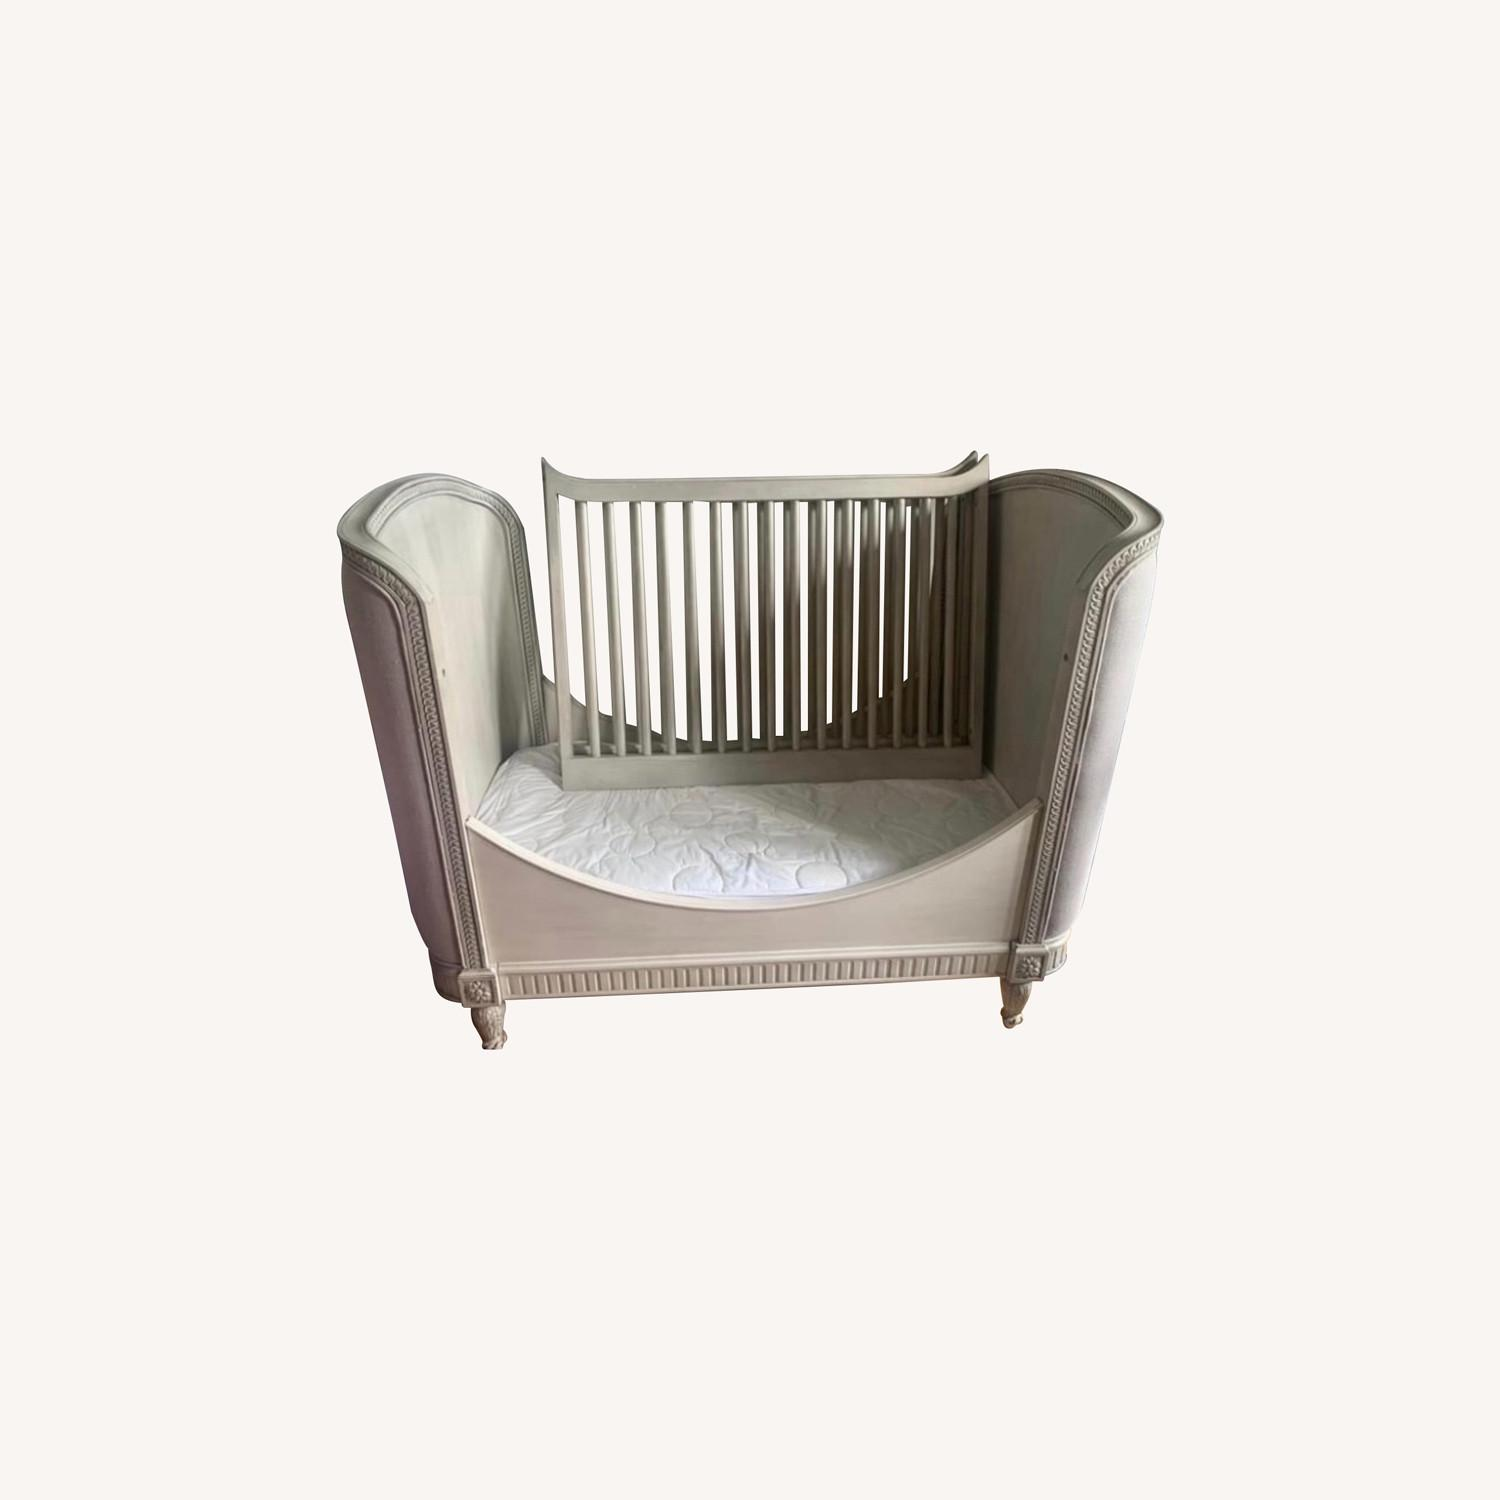 Restoration Hardware Belle Upholstered Crib - image-0